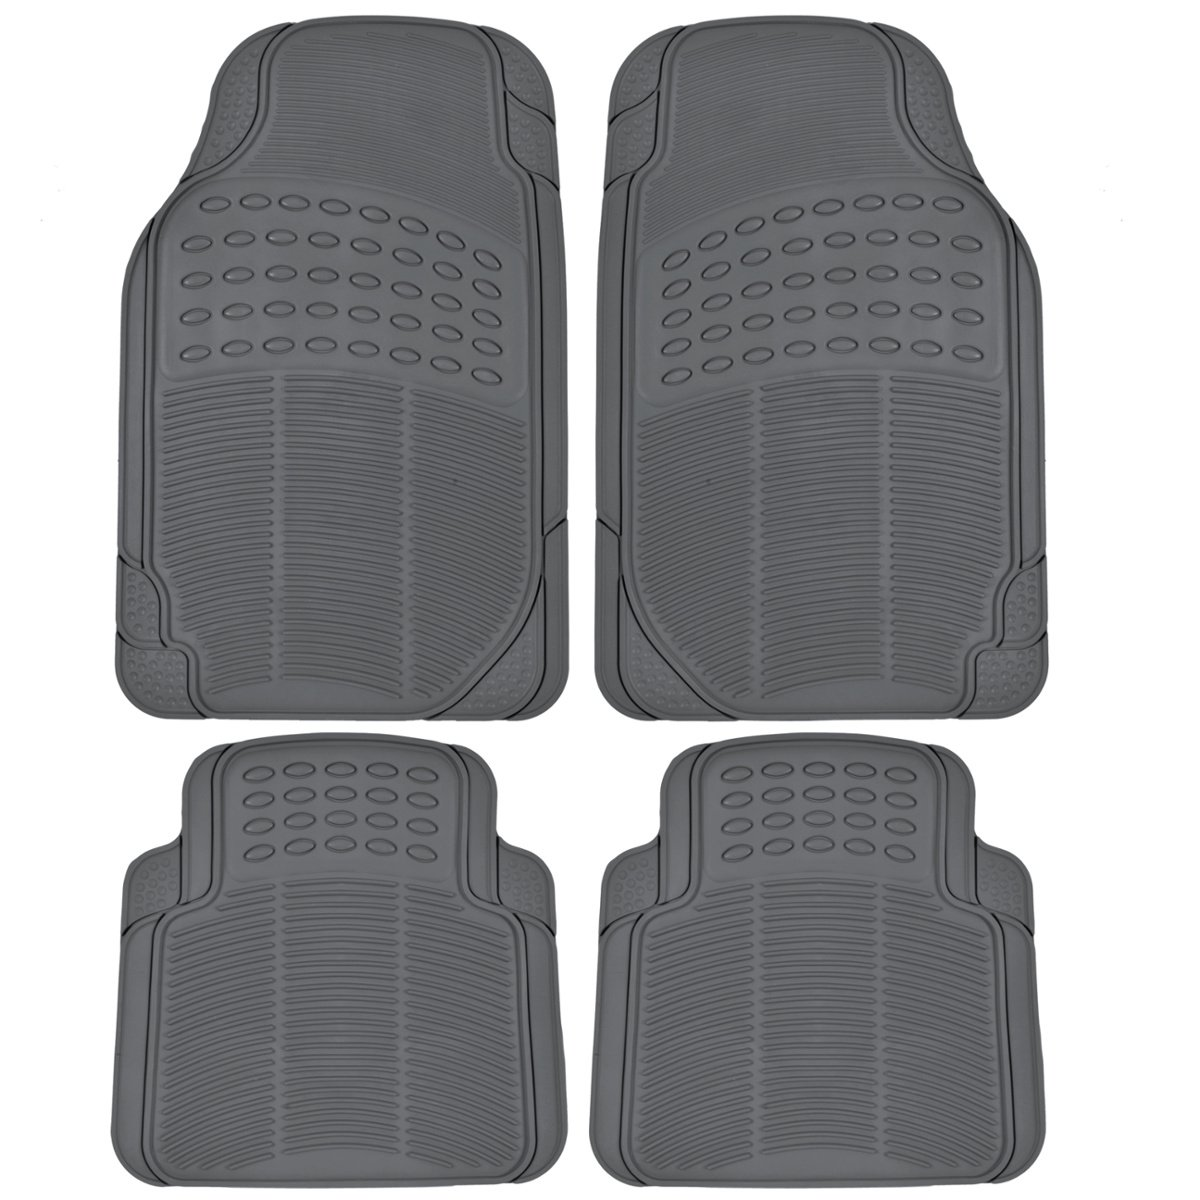 BDK MT654PLUS Heavy Duty 4pc Front & Rear Rubber Floor Mats for Car SUV Van & Truck - All Weather Protection Universal Fit (Gray)